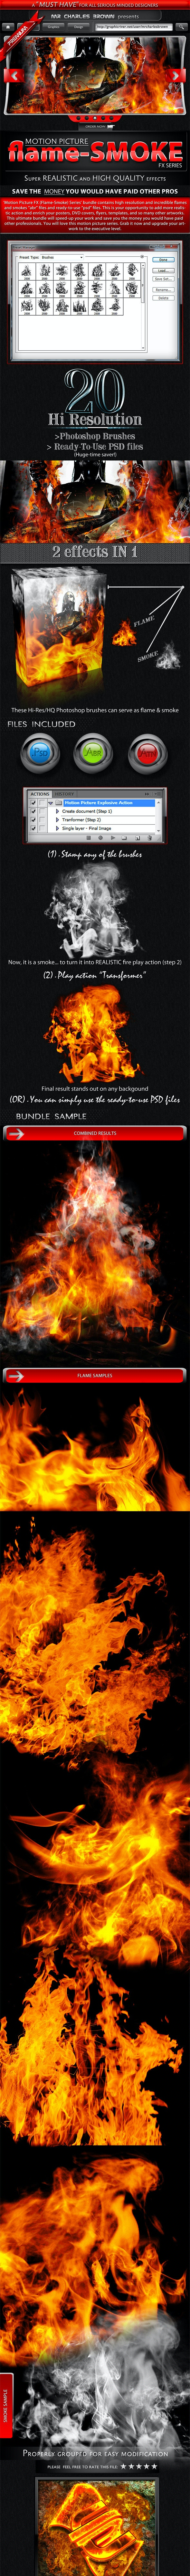 Motion Picture Flame-Smoke Series - Miscellaneous Brushes